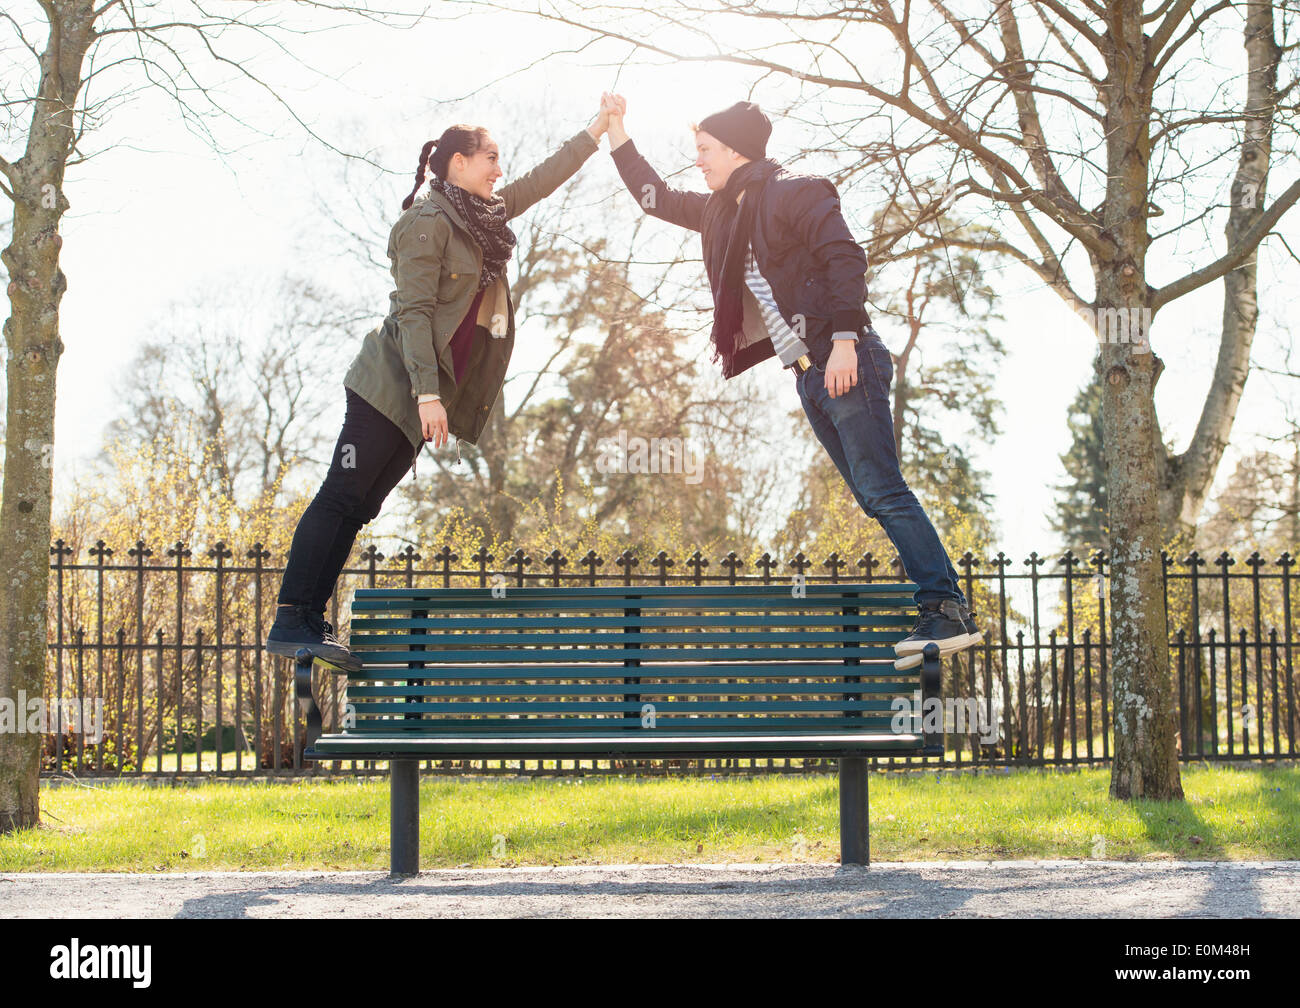 Dating young couple standing on park bench, holding hands. - Stock Image